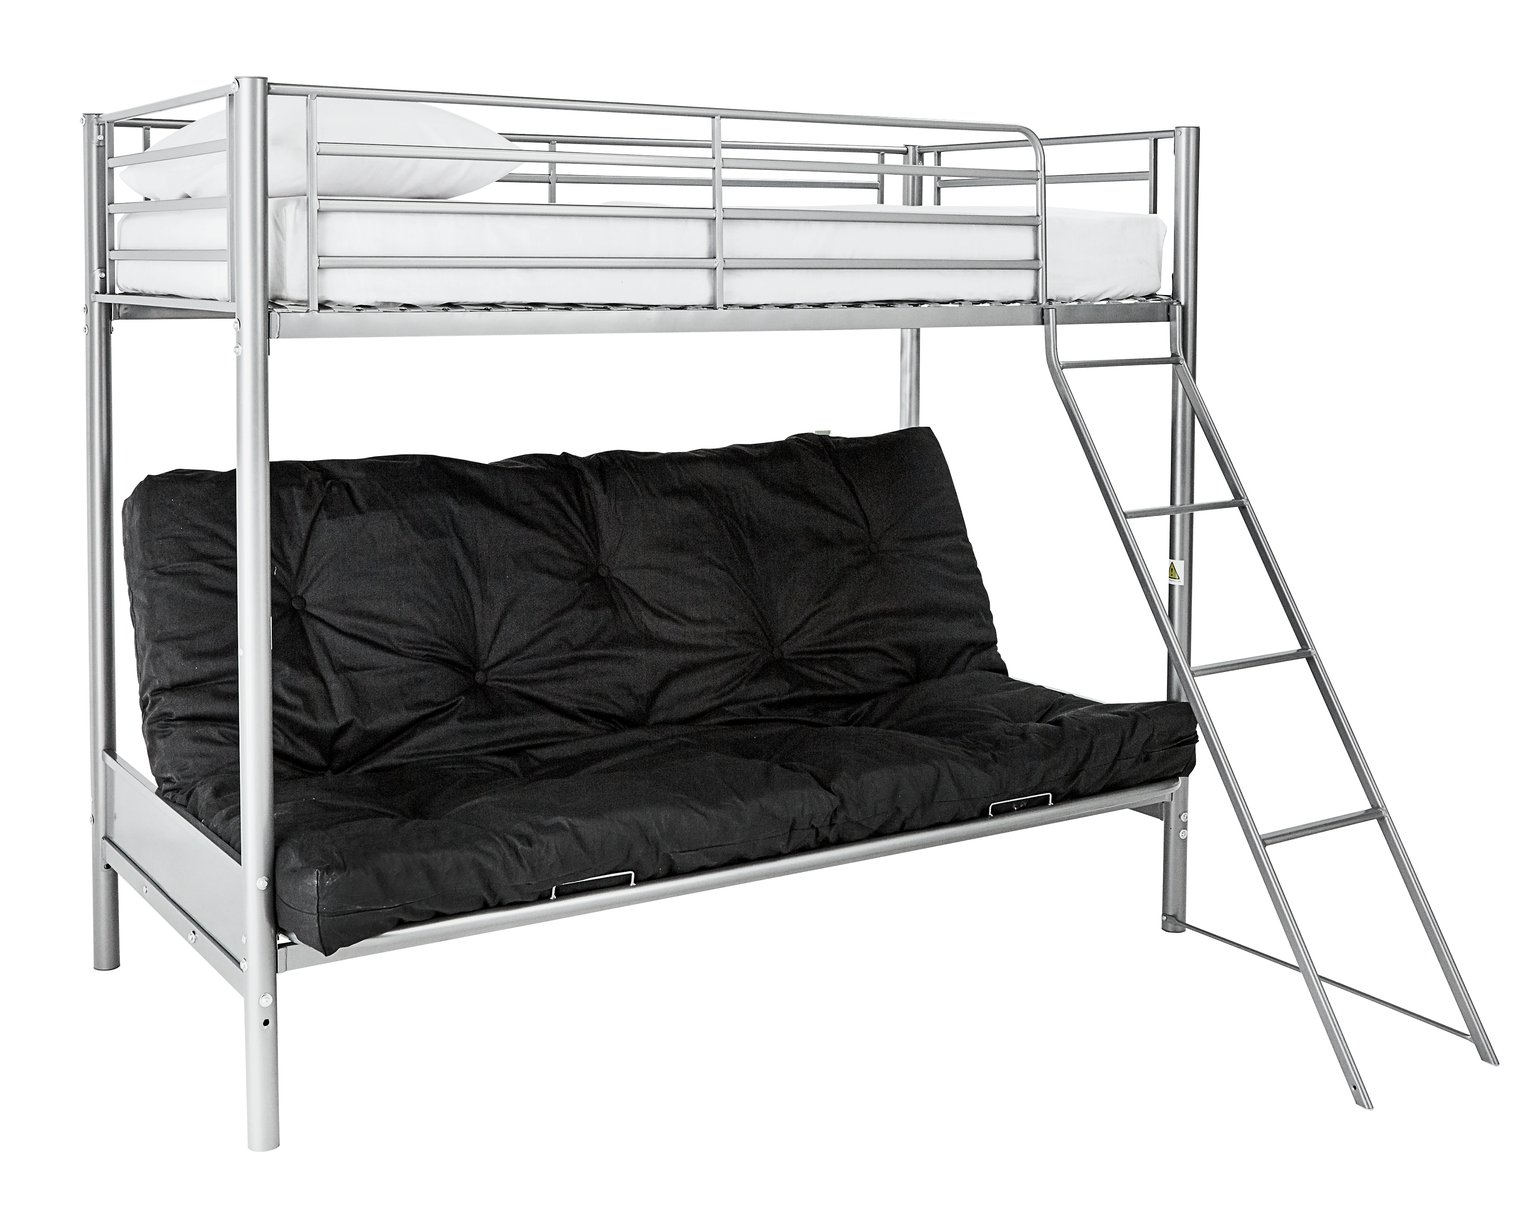 bunk beds with sofa bed underneath argos leather vs fabric buy home metal frame black futon kids mattress